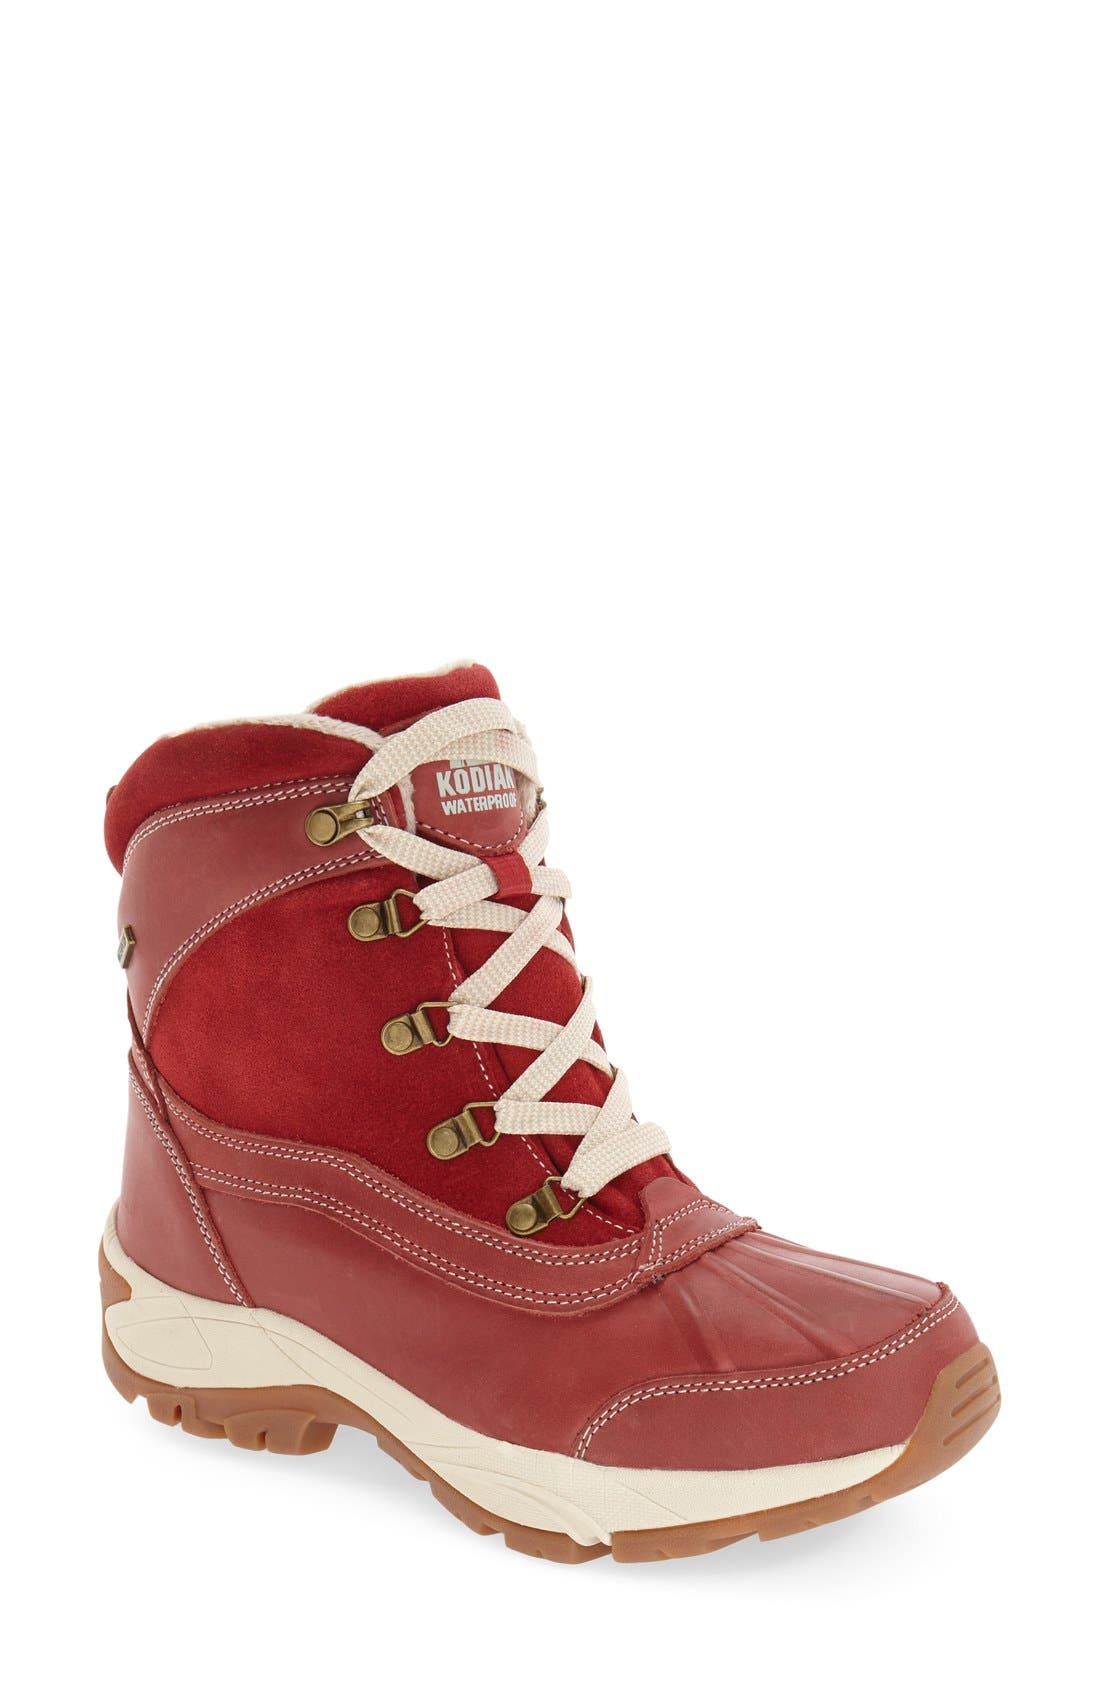 'Renee' Waterproof Insulated Winter Boot,                         Main,                         color, Red Leather